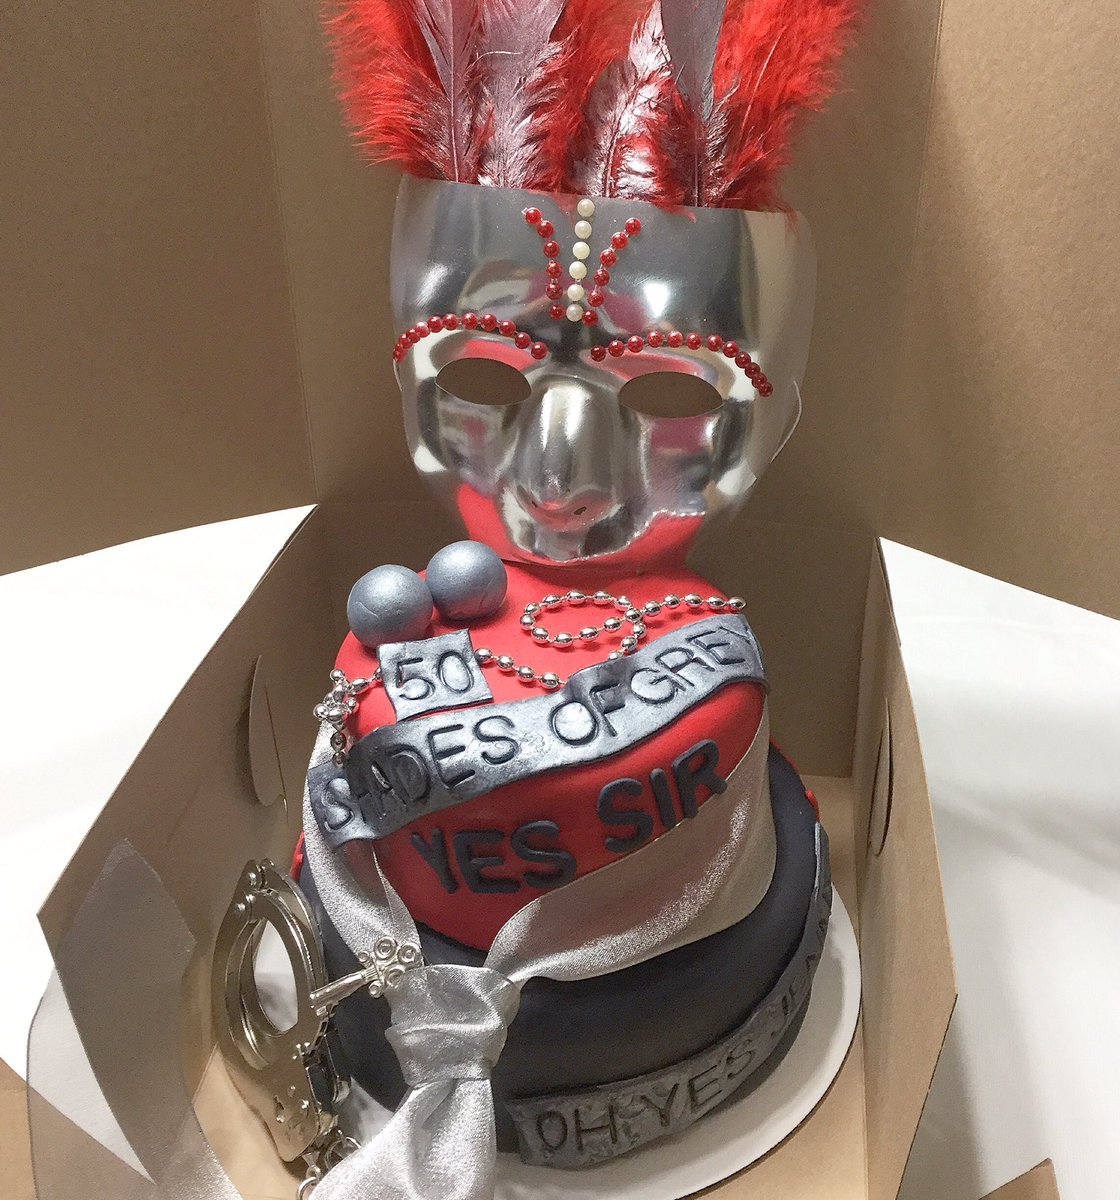 50 Shades Of Grey Themed 50th Birthday Celebration CustomCakes Tampa Delivery 101Flavorspictwitter GMjsCXjRSz